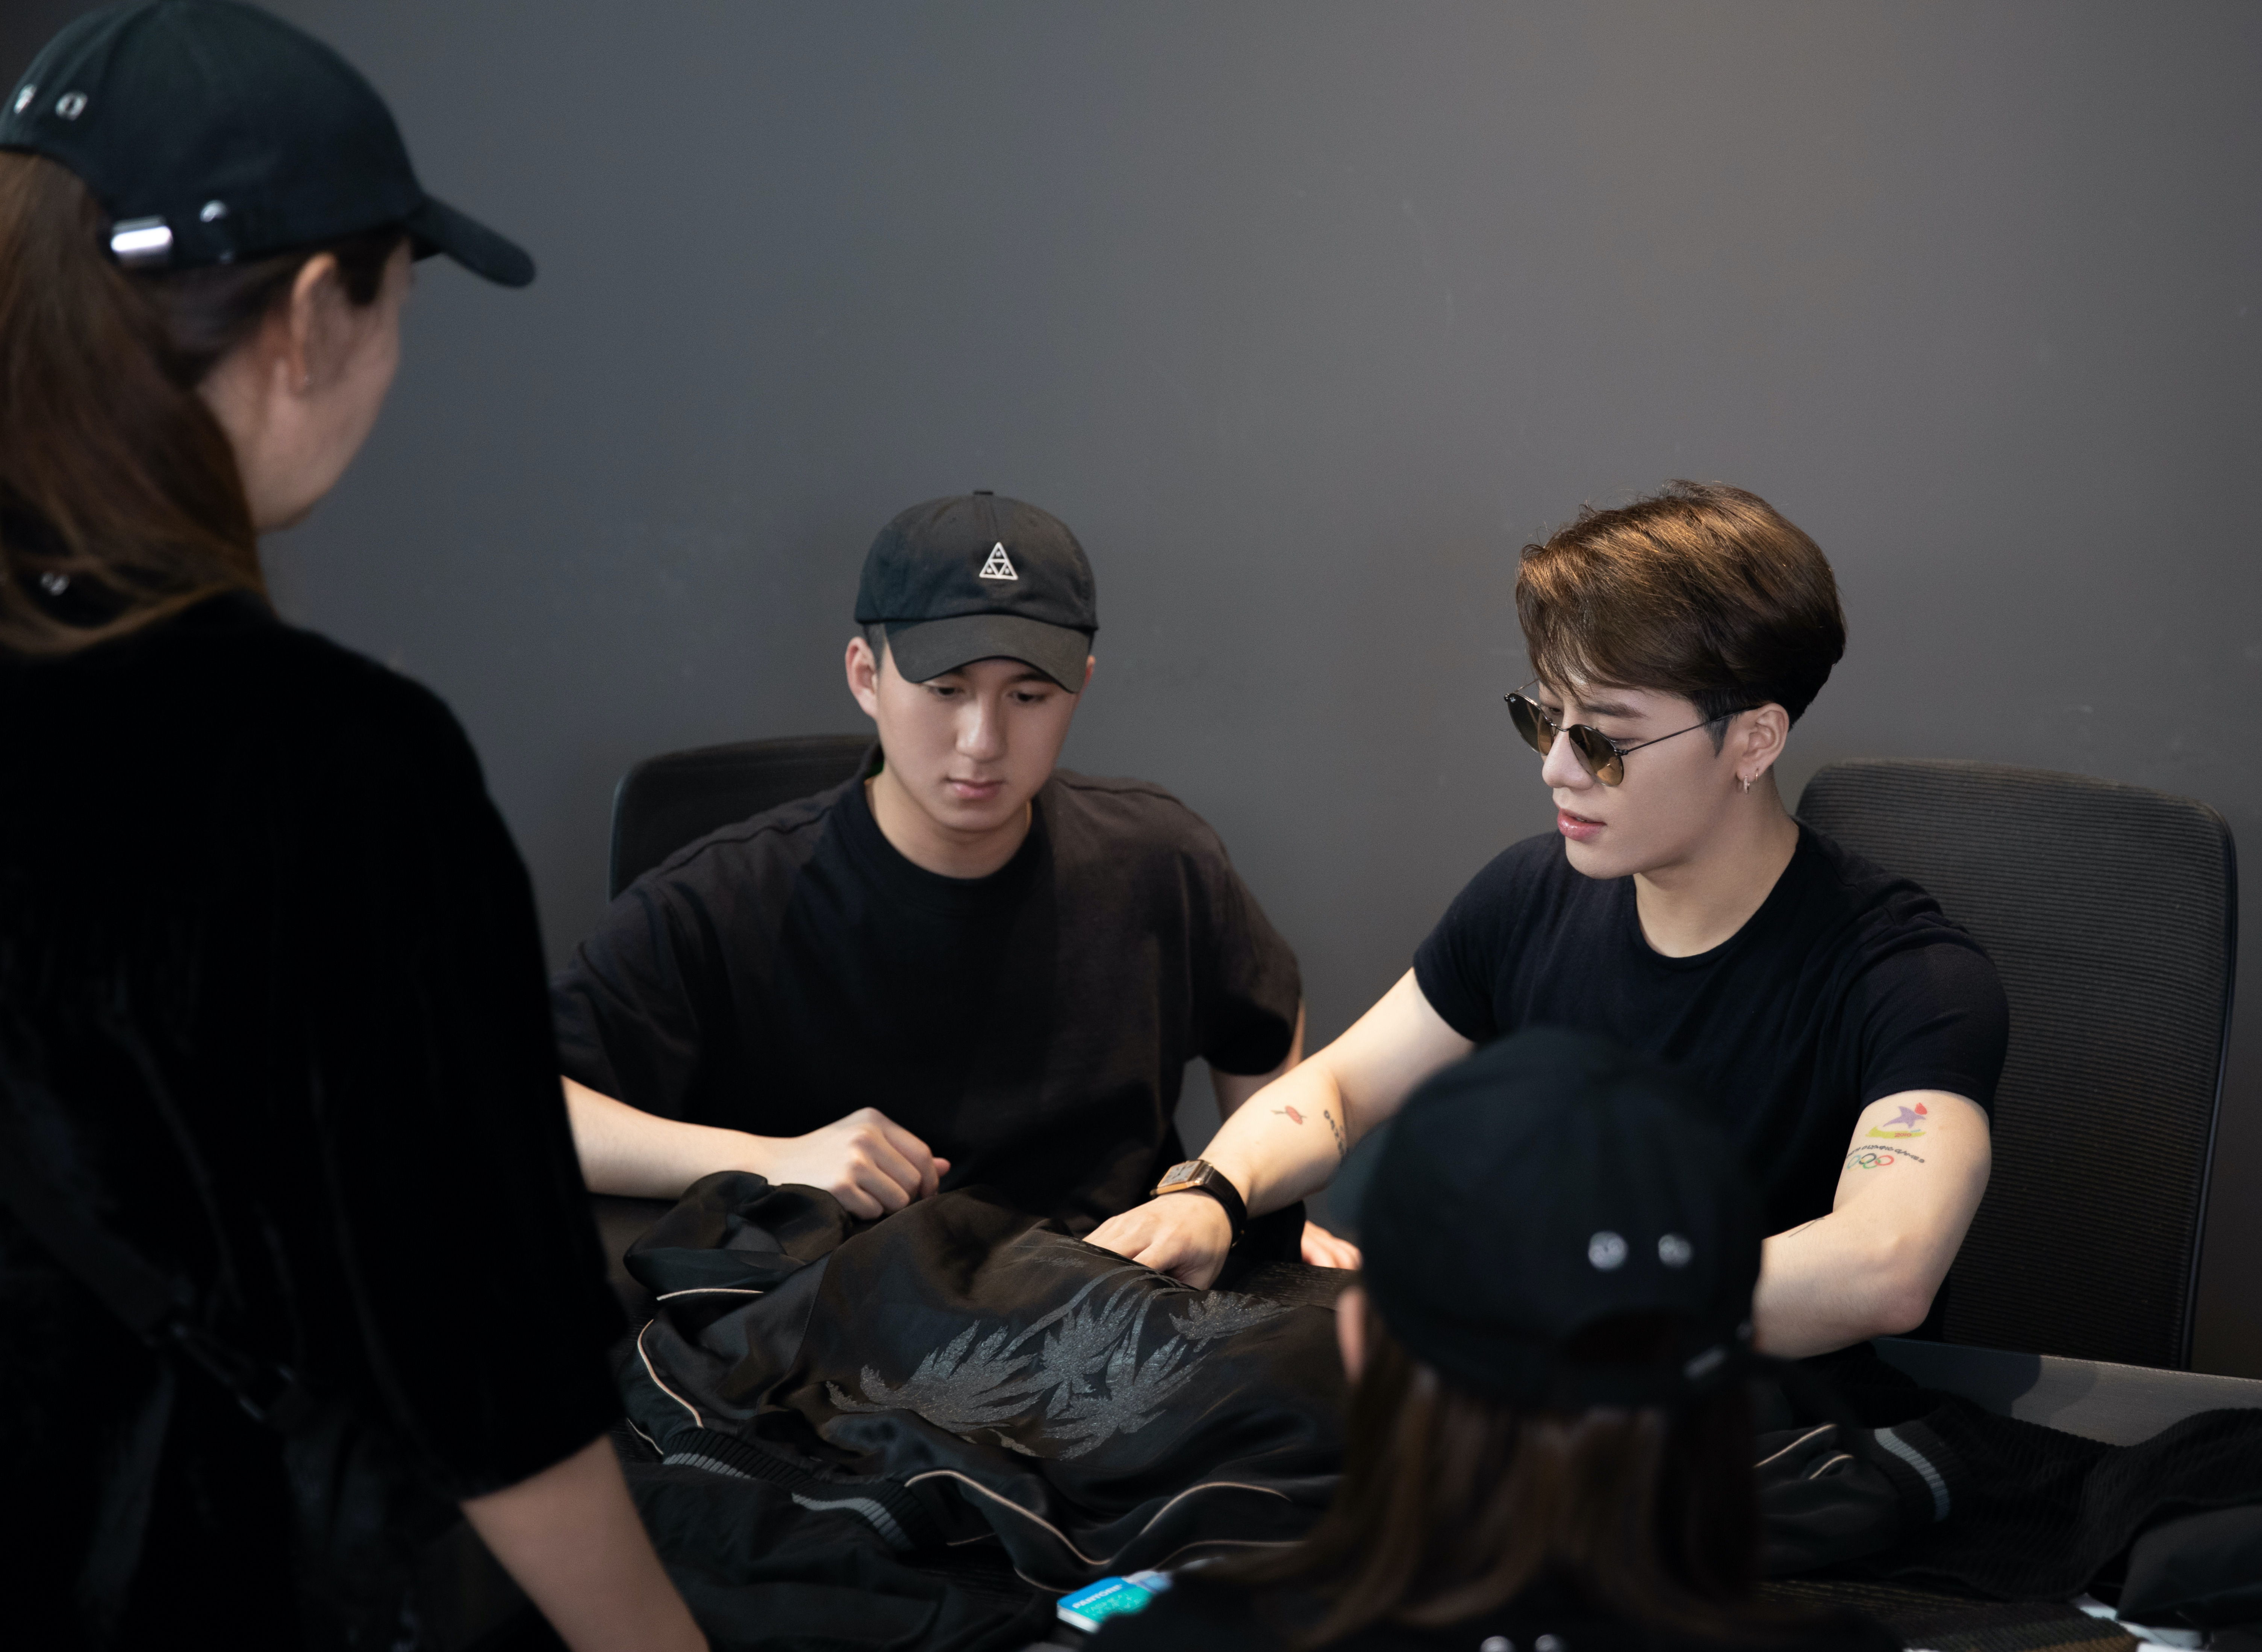 Henry Cheung (left) and Jackson Wang (right) look at the Palm Angels x Team Wang collaboration.